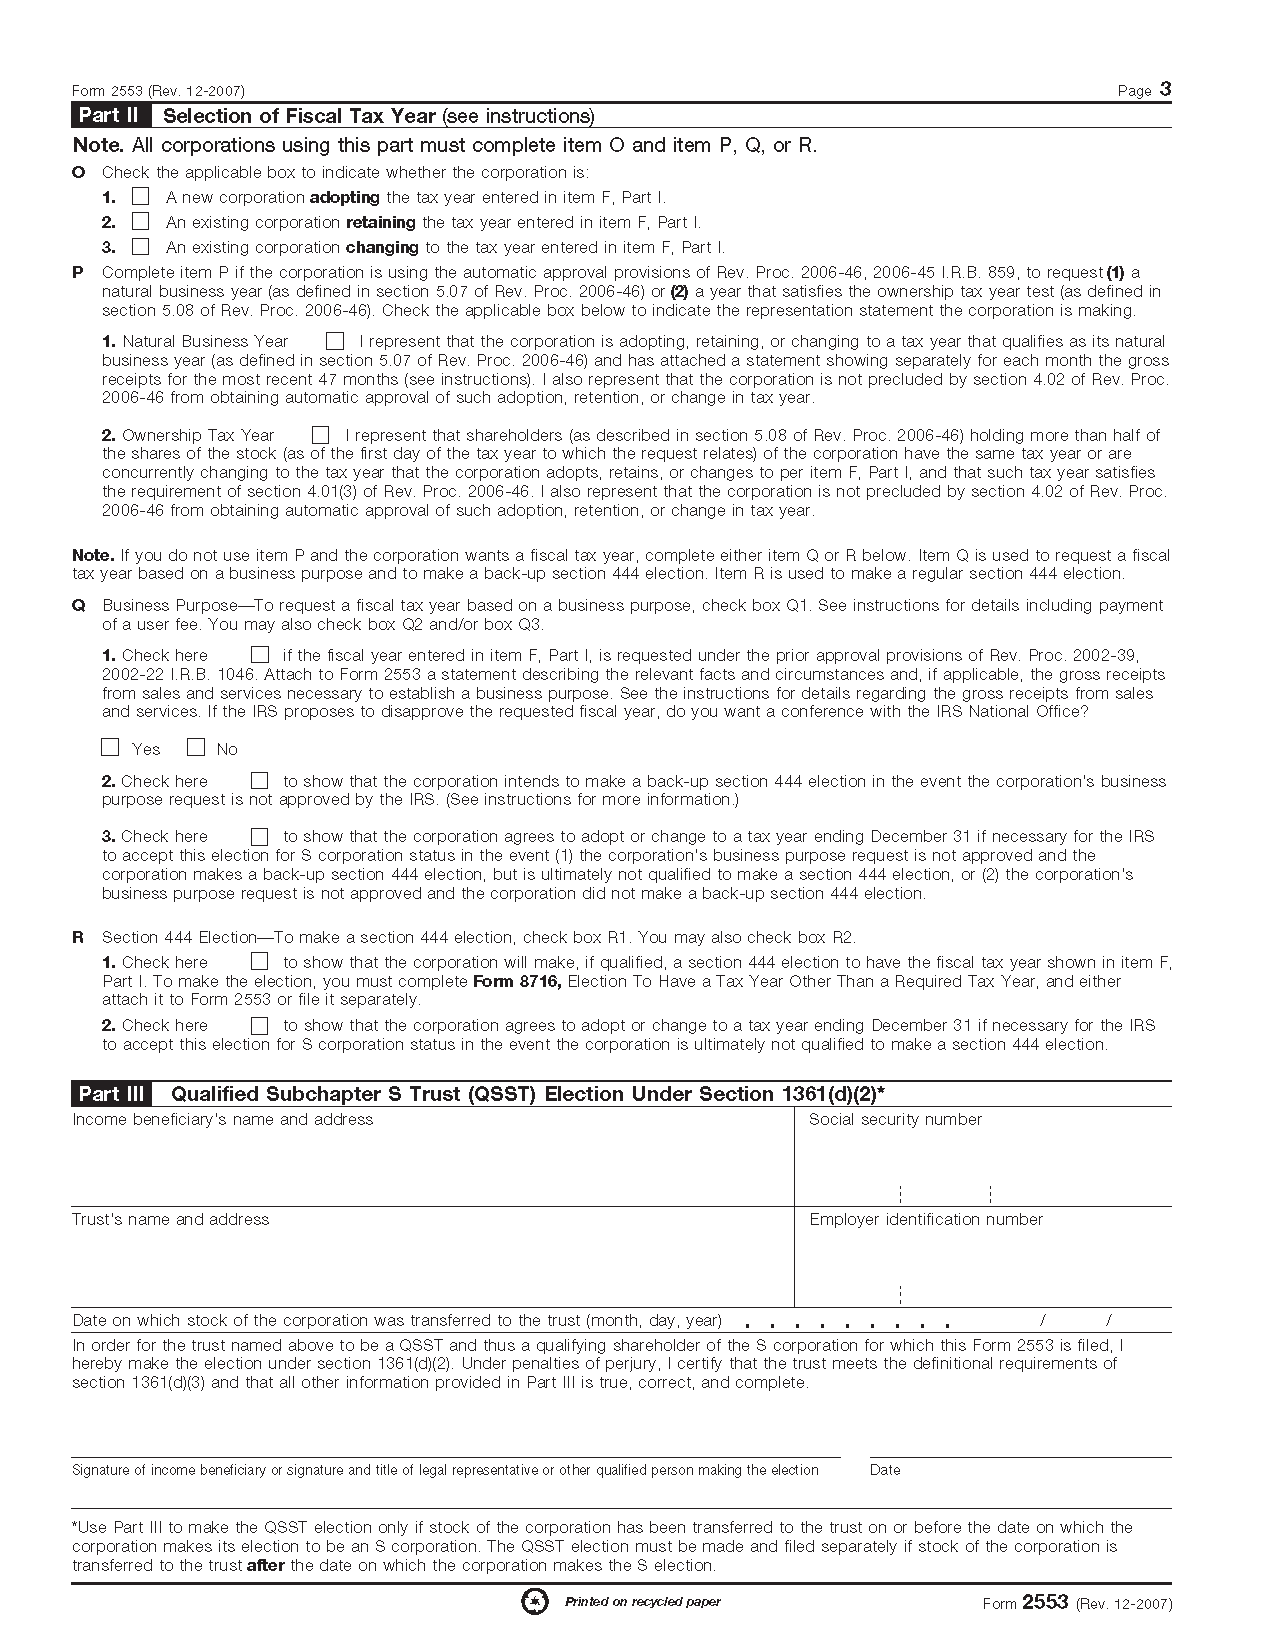 Form 2553 election by a small business corporation view all 2011 irs tax forms falaconquin